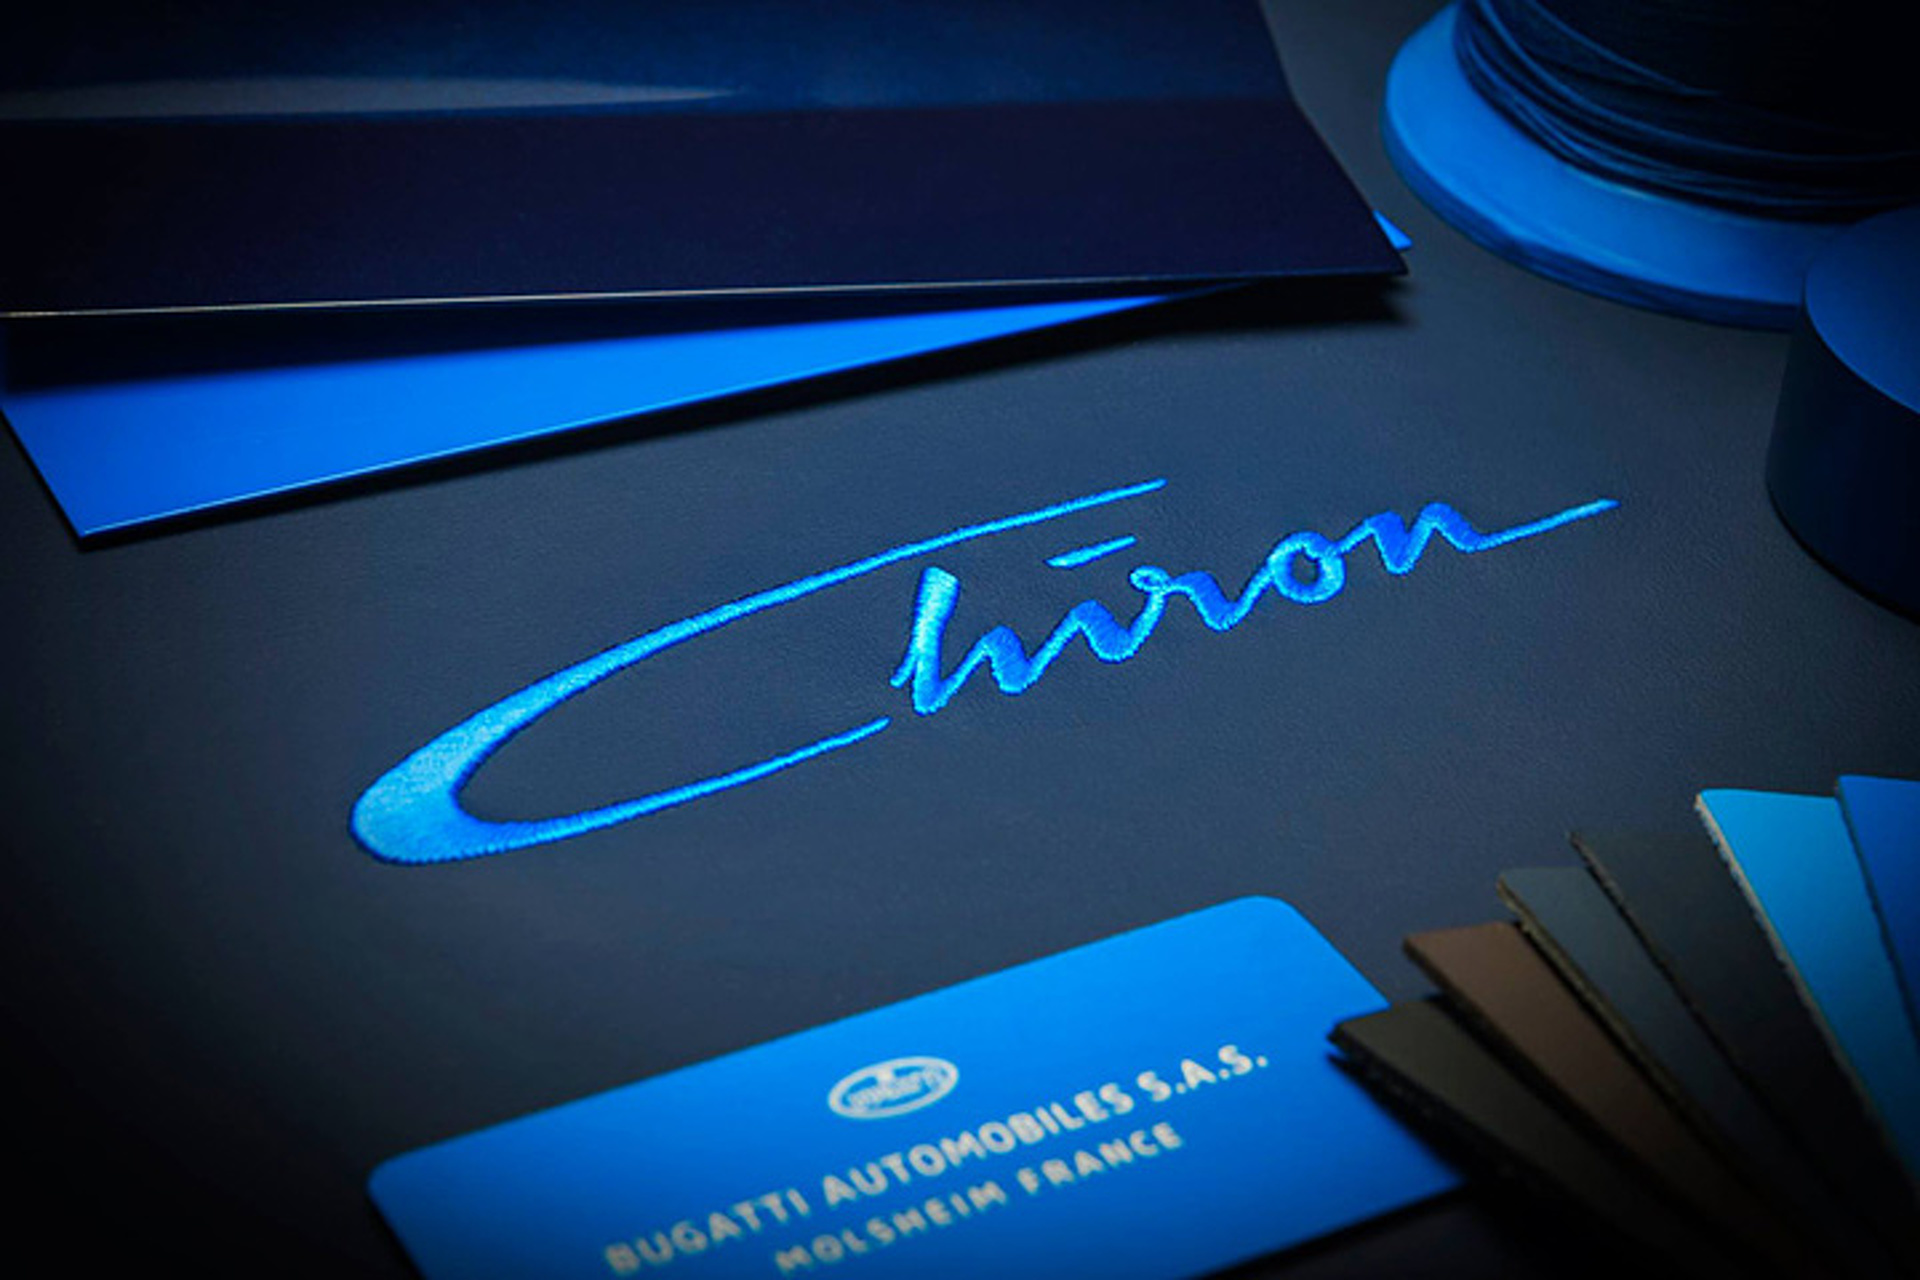 2017 Bugatti Chiron Hypercar: What's in a Name?